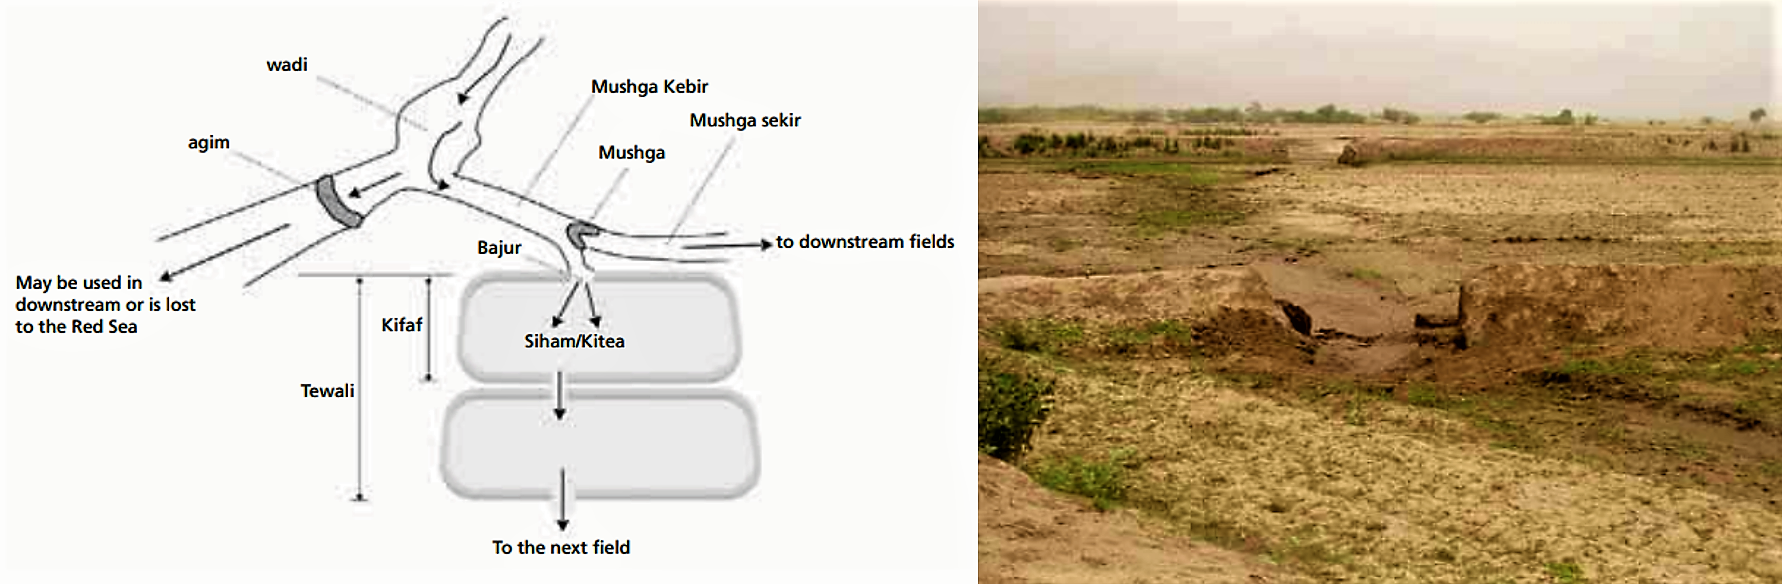 A field-to-field distribution in Eritrea. The picture on the right side shows cuts on the bunds to irrigate the next field. Source: FAO (2010)